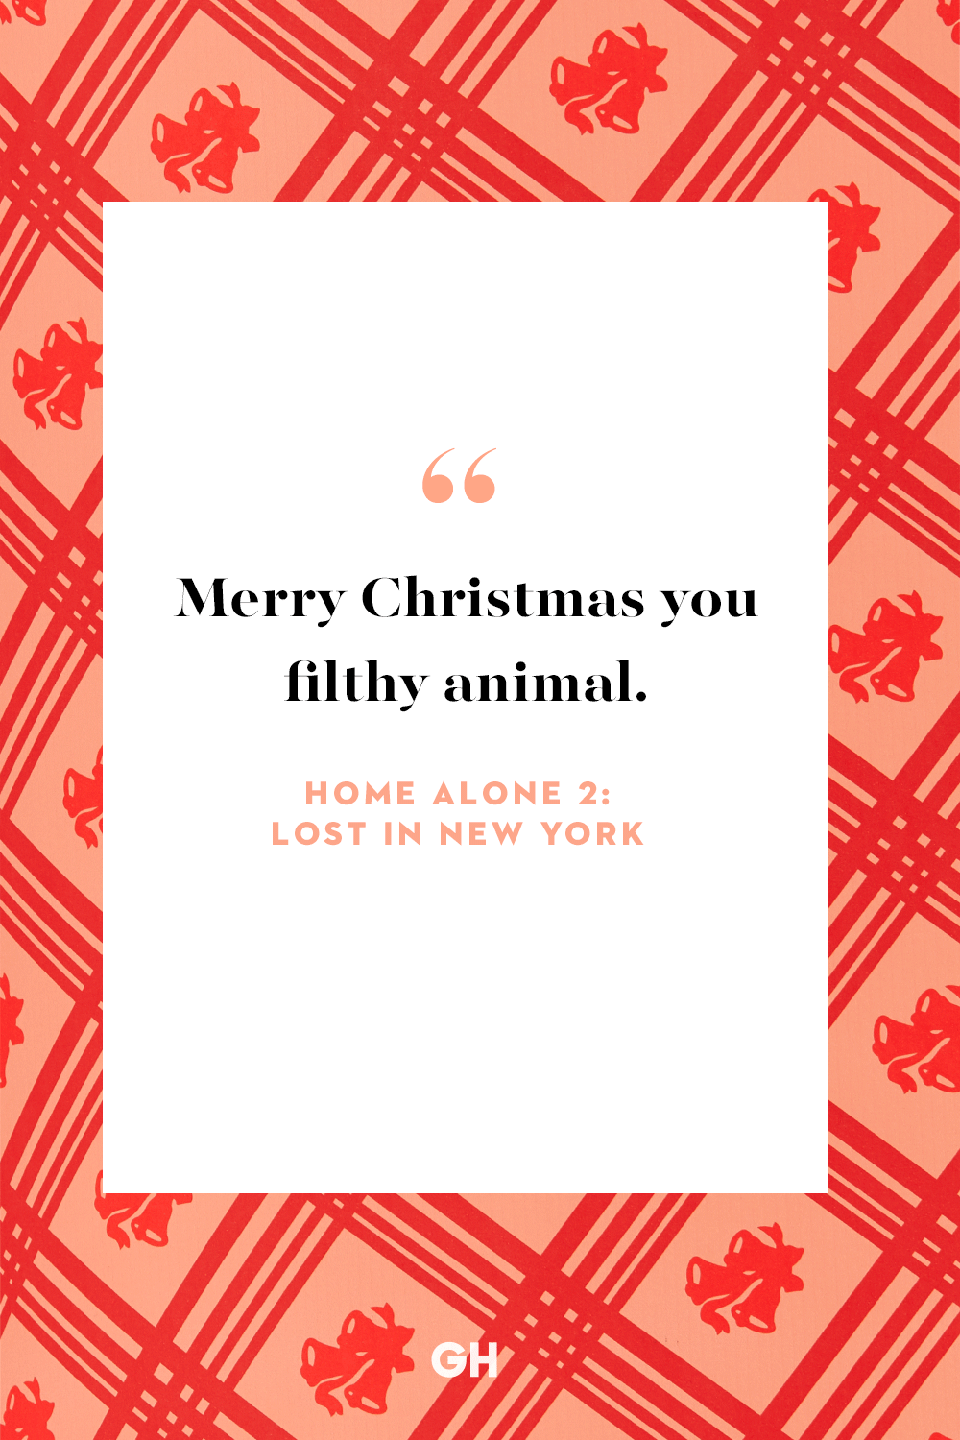 <p>Merry Christmas you filthy animal.</p>